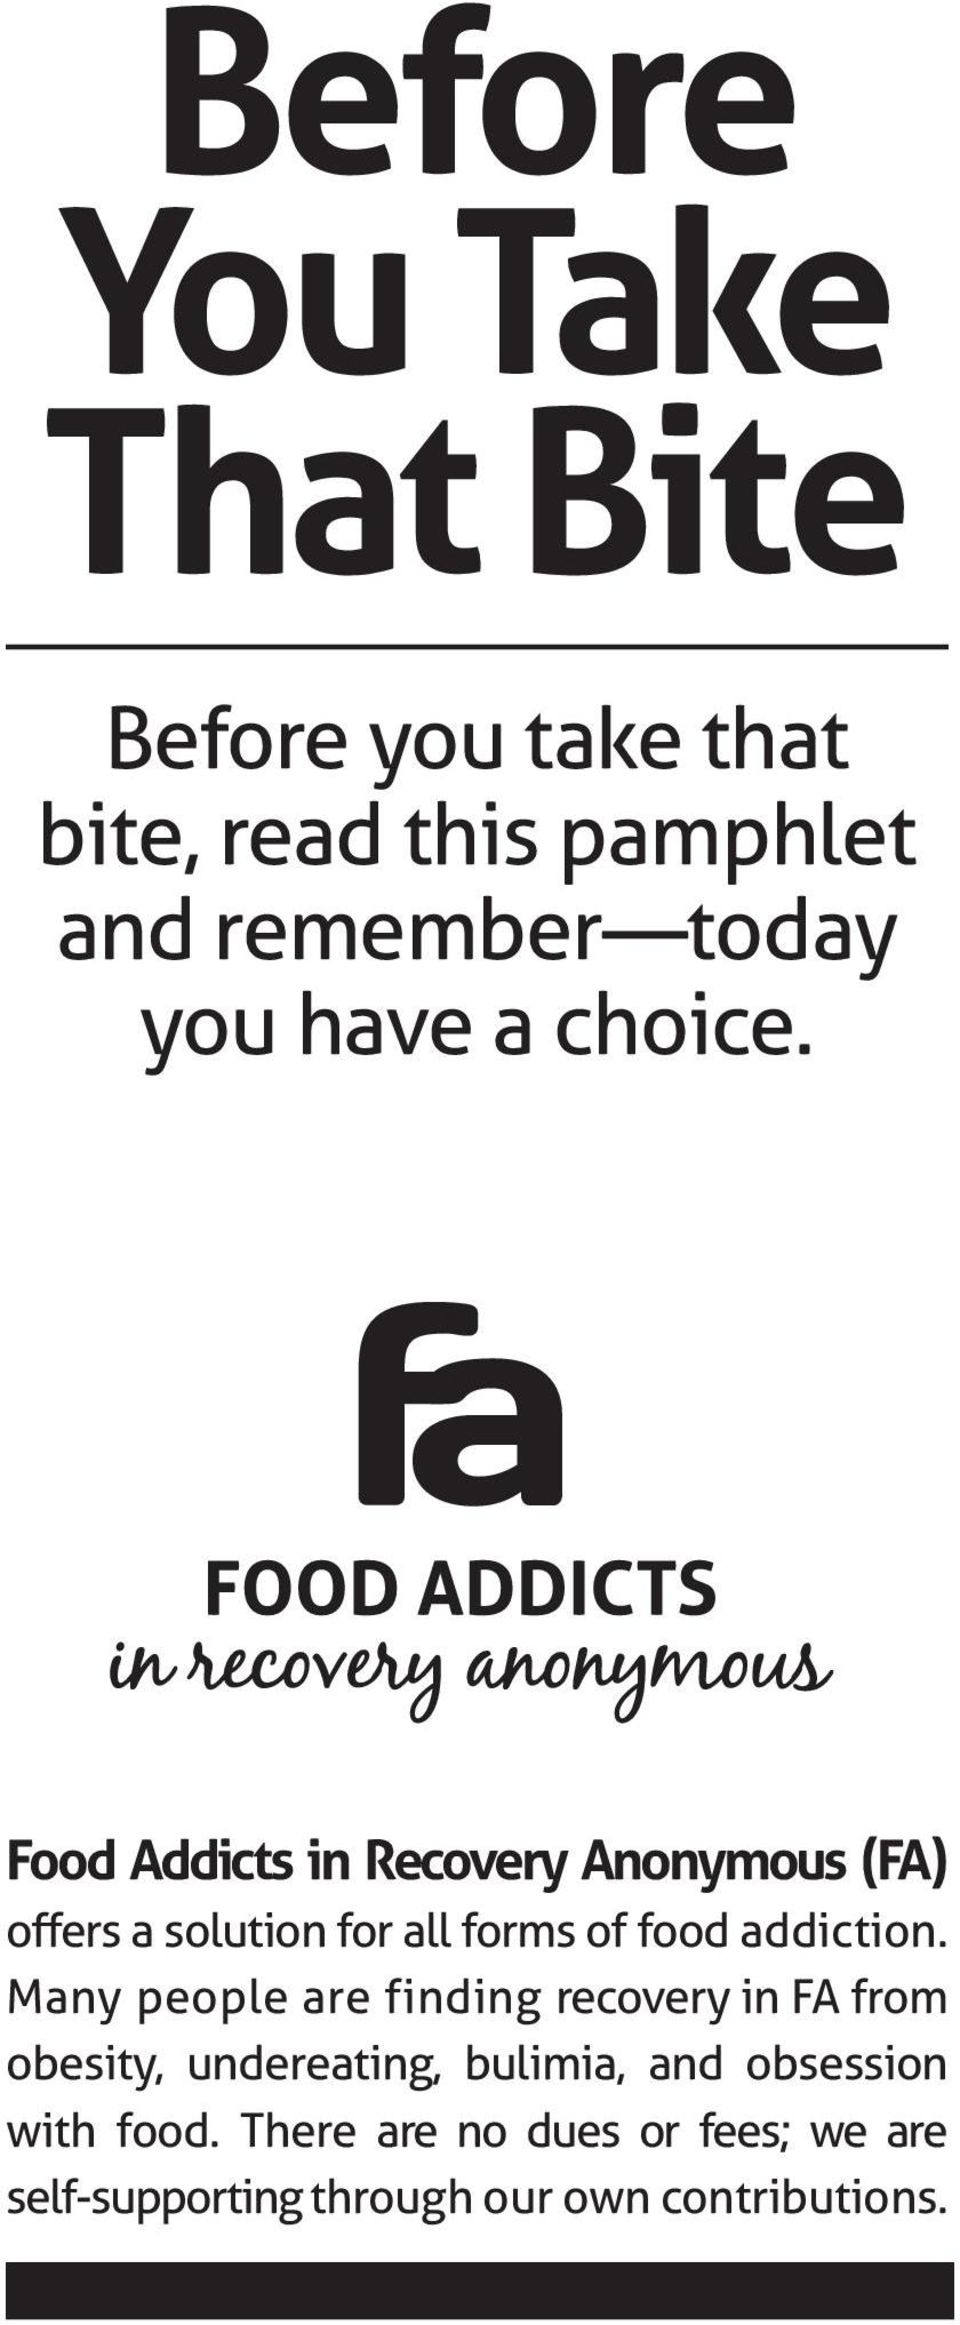 Food Addicts in Recovery Anonymous (FA) offers a solution for all forms of food addiction.